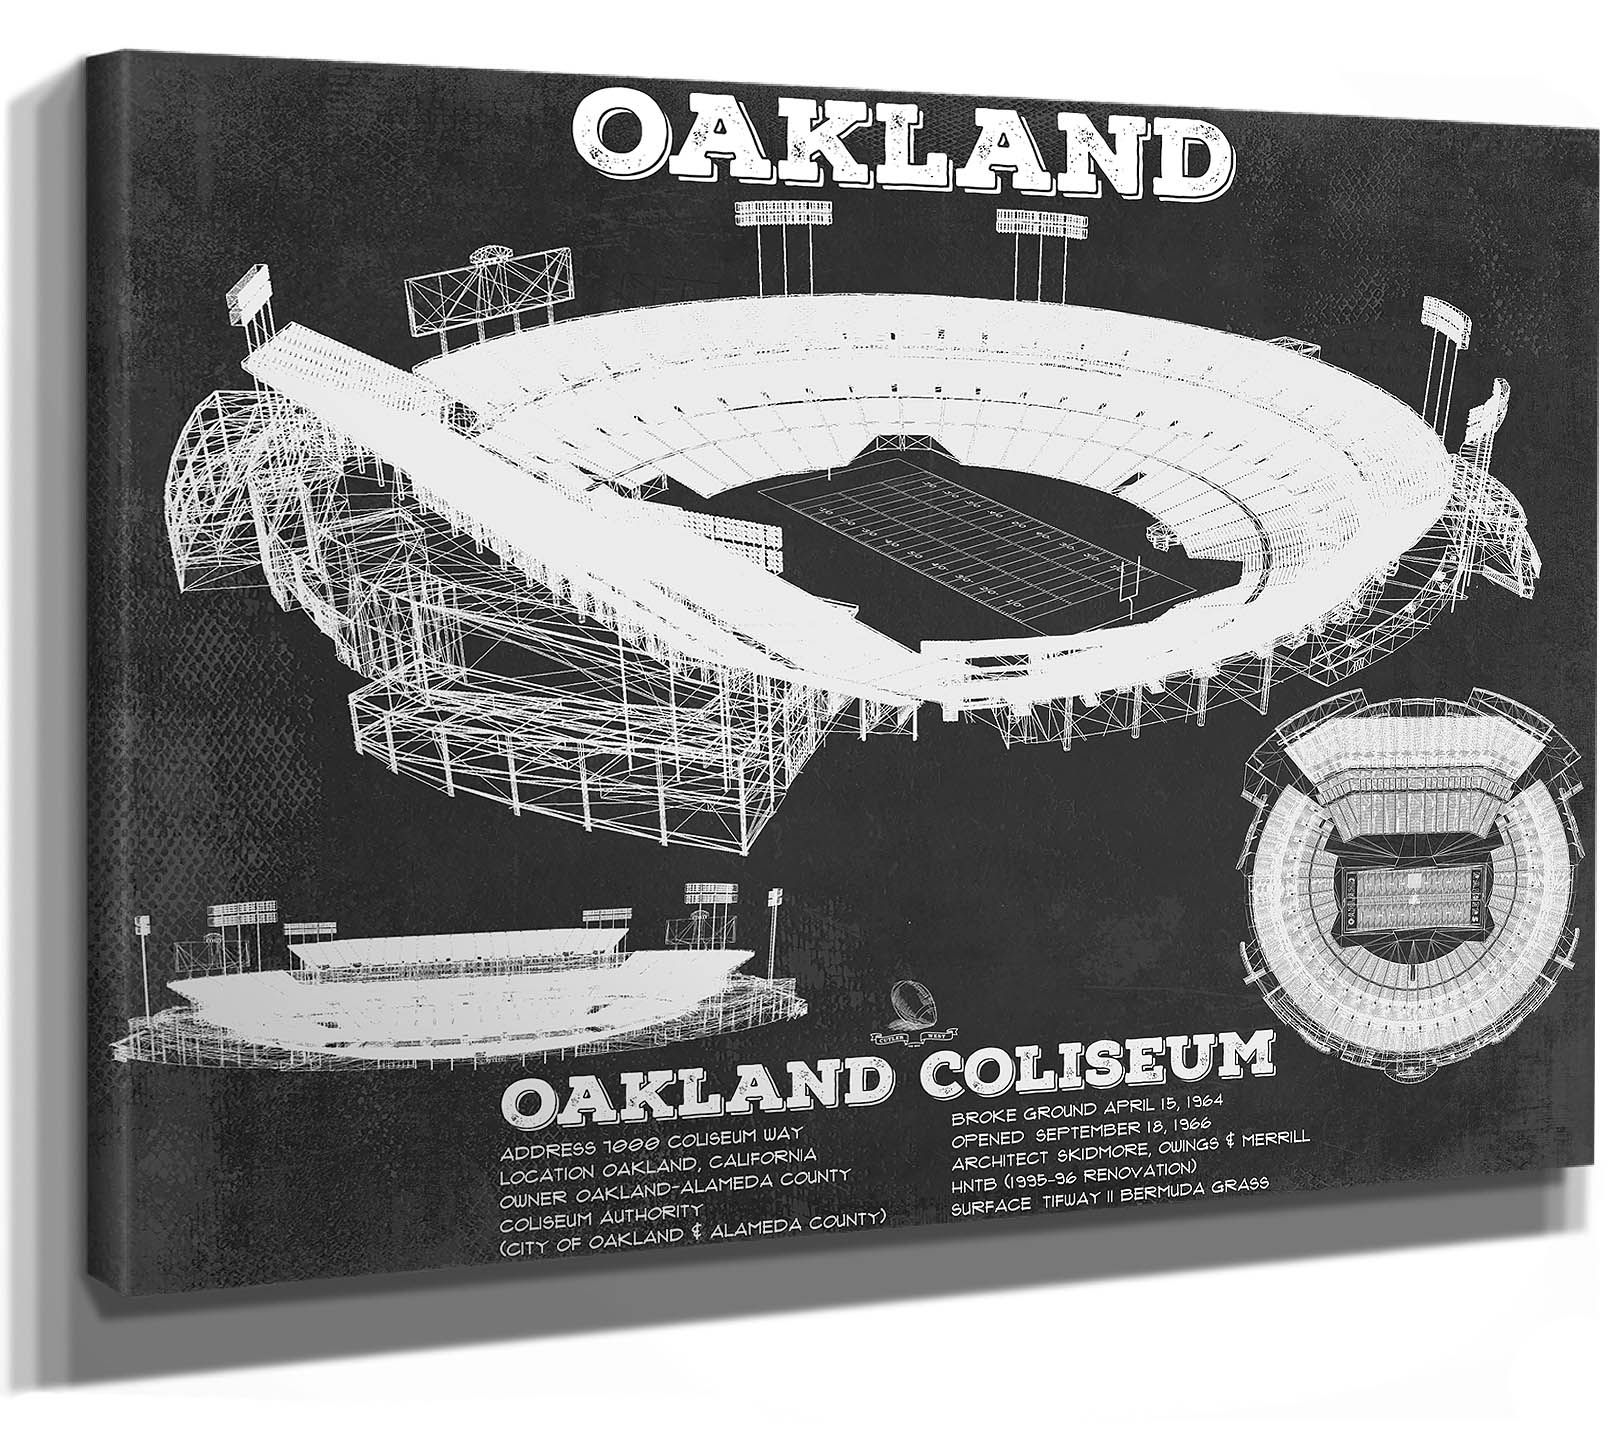 Oakland Raiders Alameda County Coliseum Seating Chart Etsy Oakland Raiders Oakland Raiders Fans Oakland